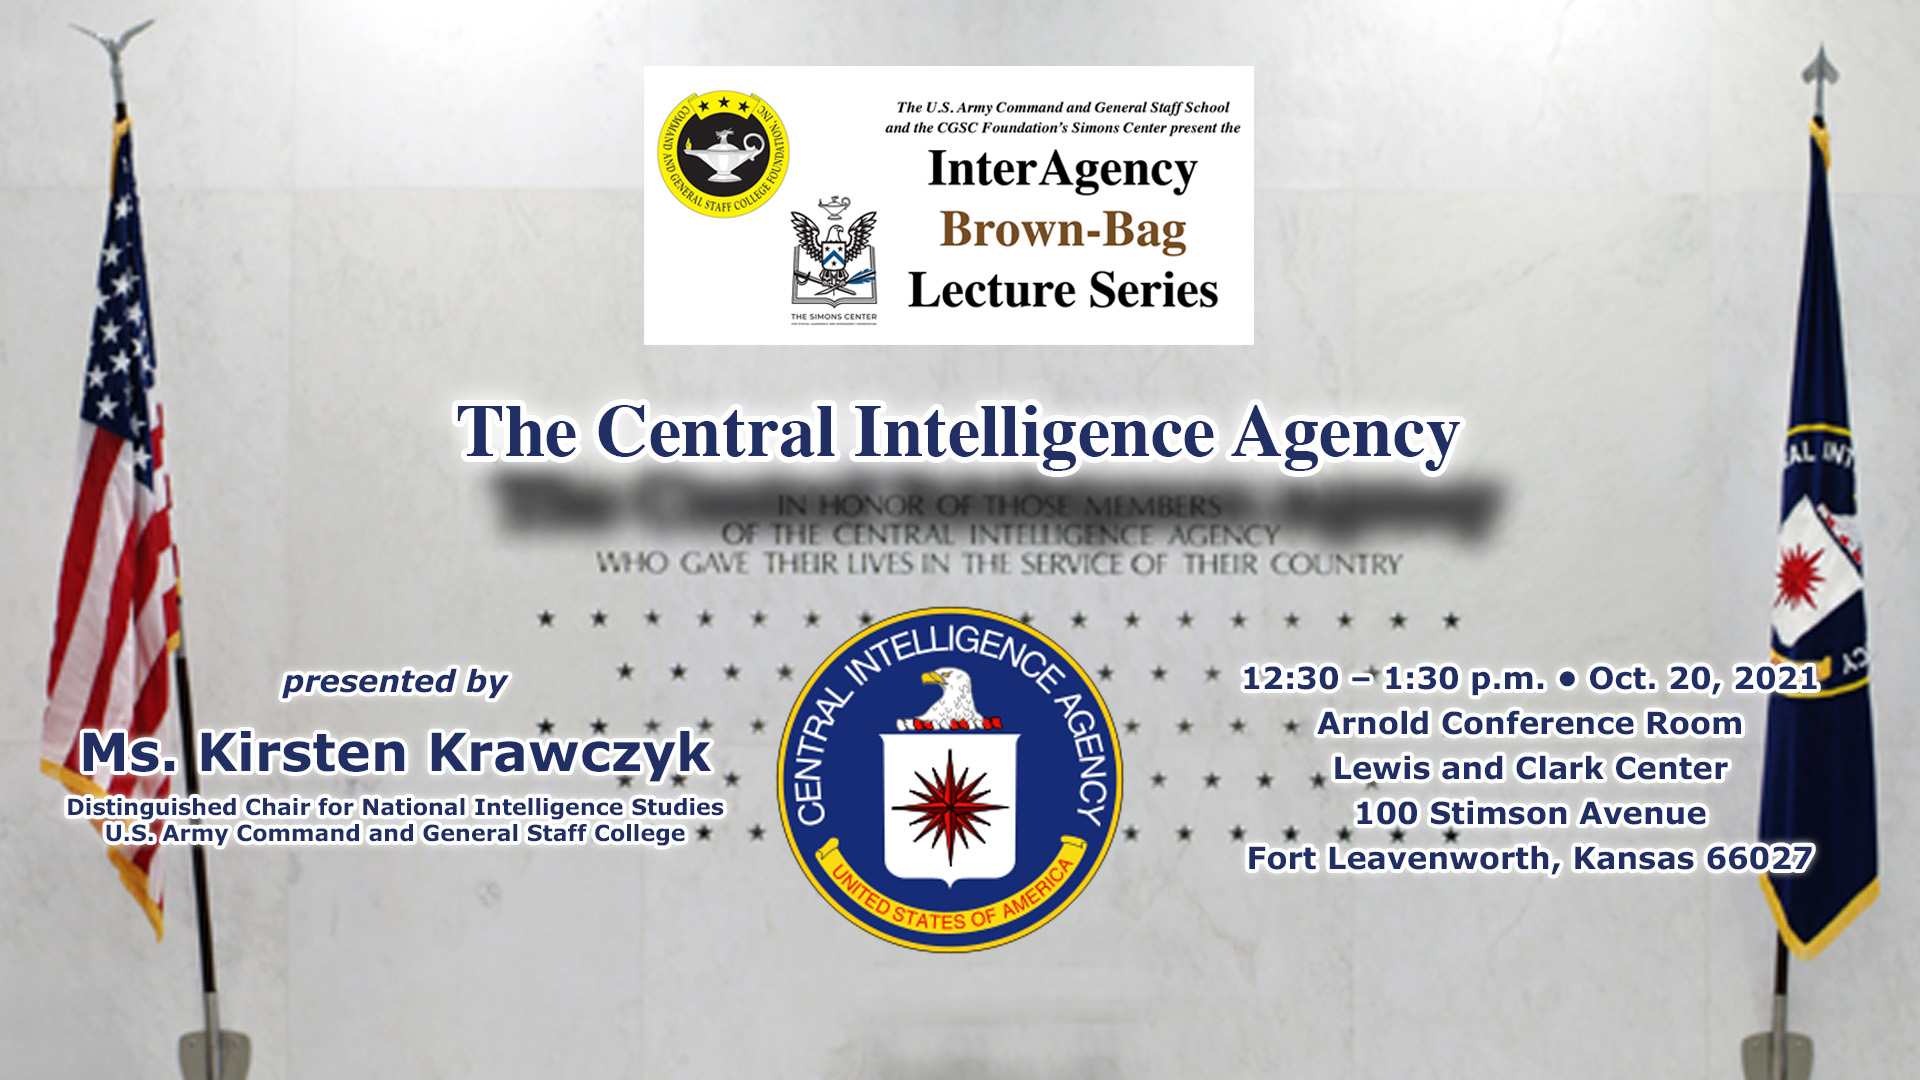 image of the CIA Memorial Wall in the CIA headquarters with Interagency Brownbag Lecture information text over the photo. The next brown-bag lecture is Oct. 20, 2021 at 12:30 p.m. in the Arnold Conference Room of the Lewis and Clark Center.